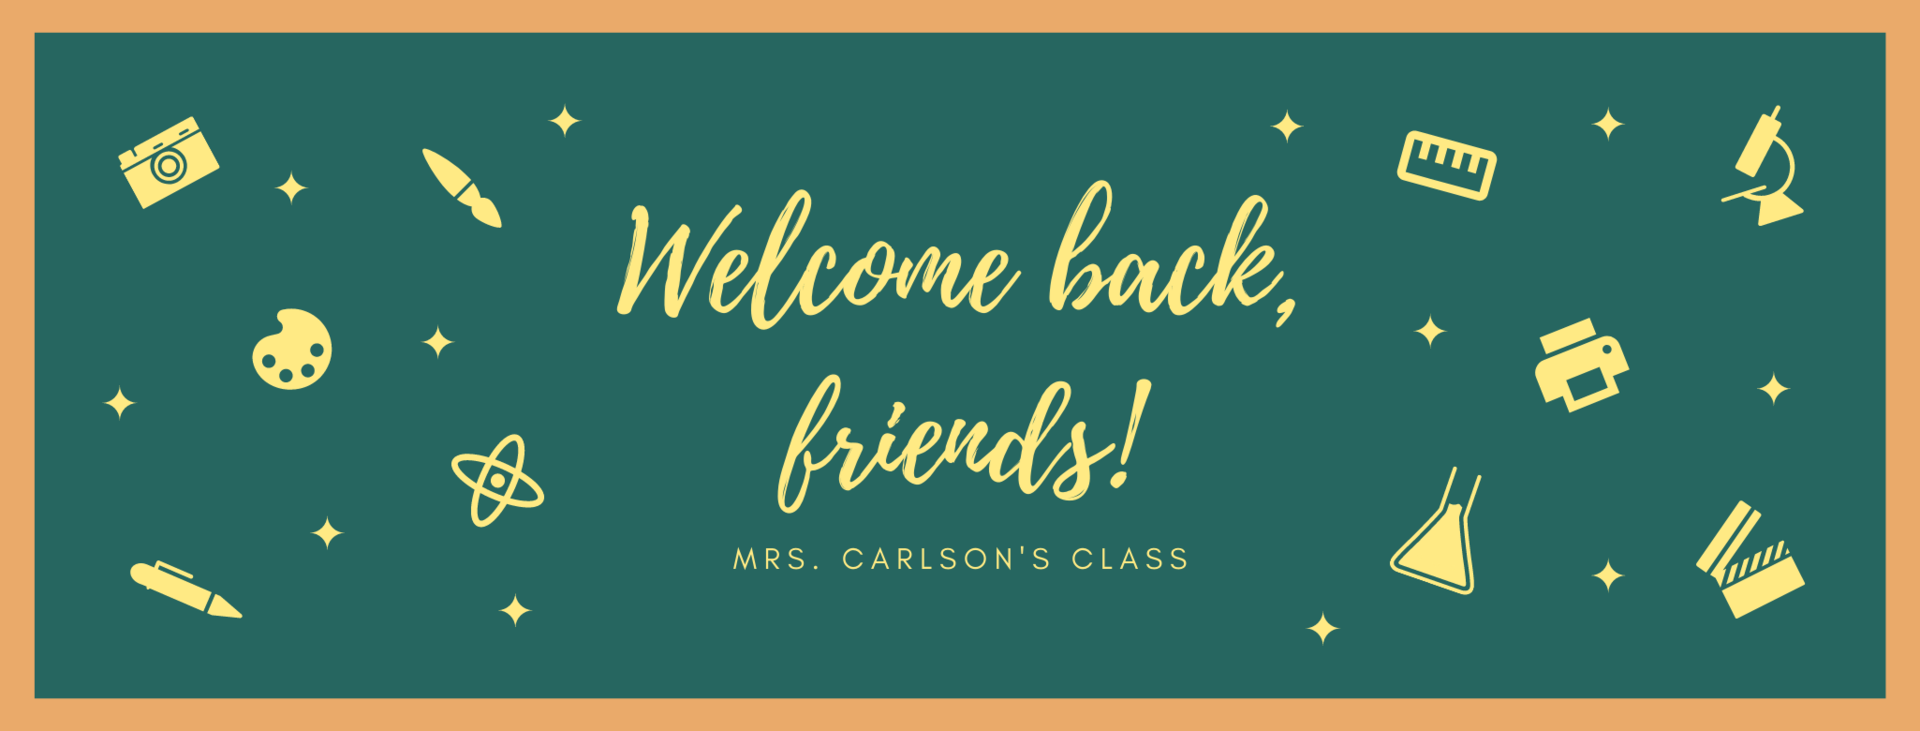 Welcome back, friends!